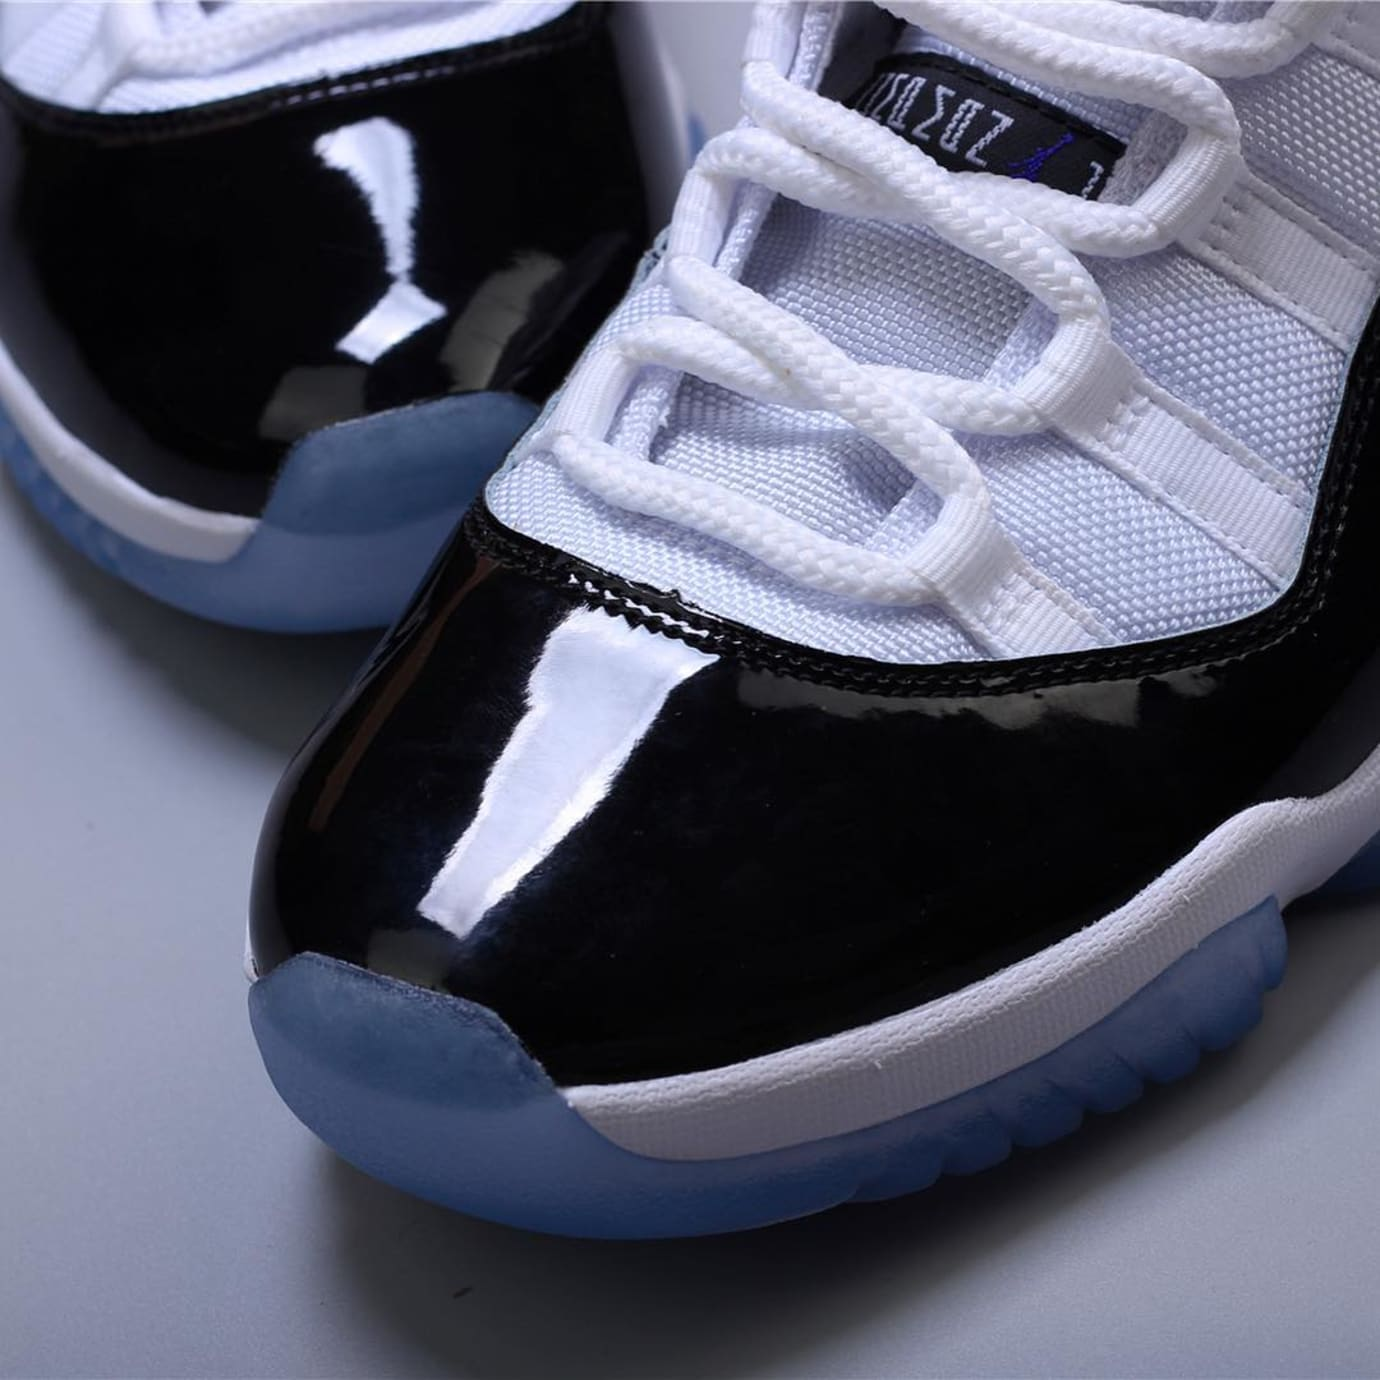 f98d9f325763 Image via hanzuying · Air Jordan 11 XI Concord 2018 Release Date 378037-100  Toebox